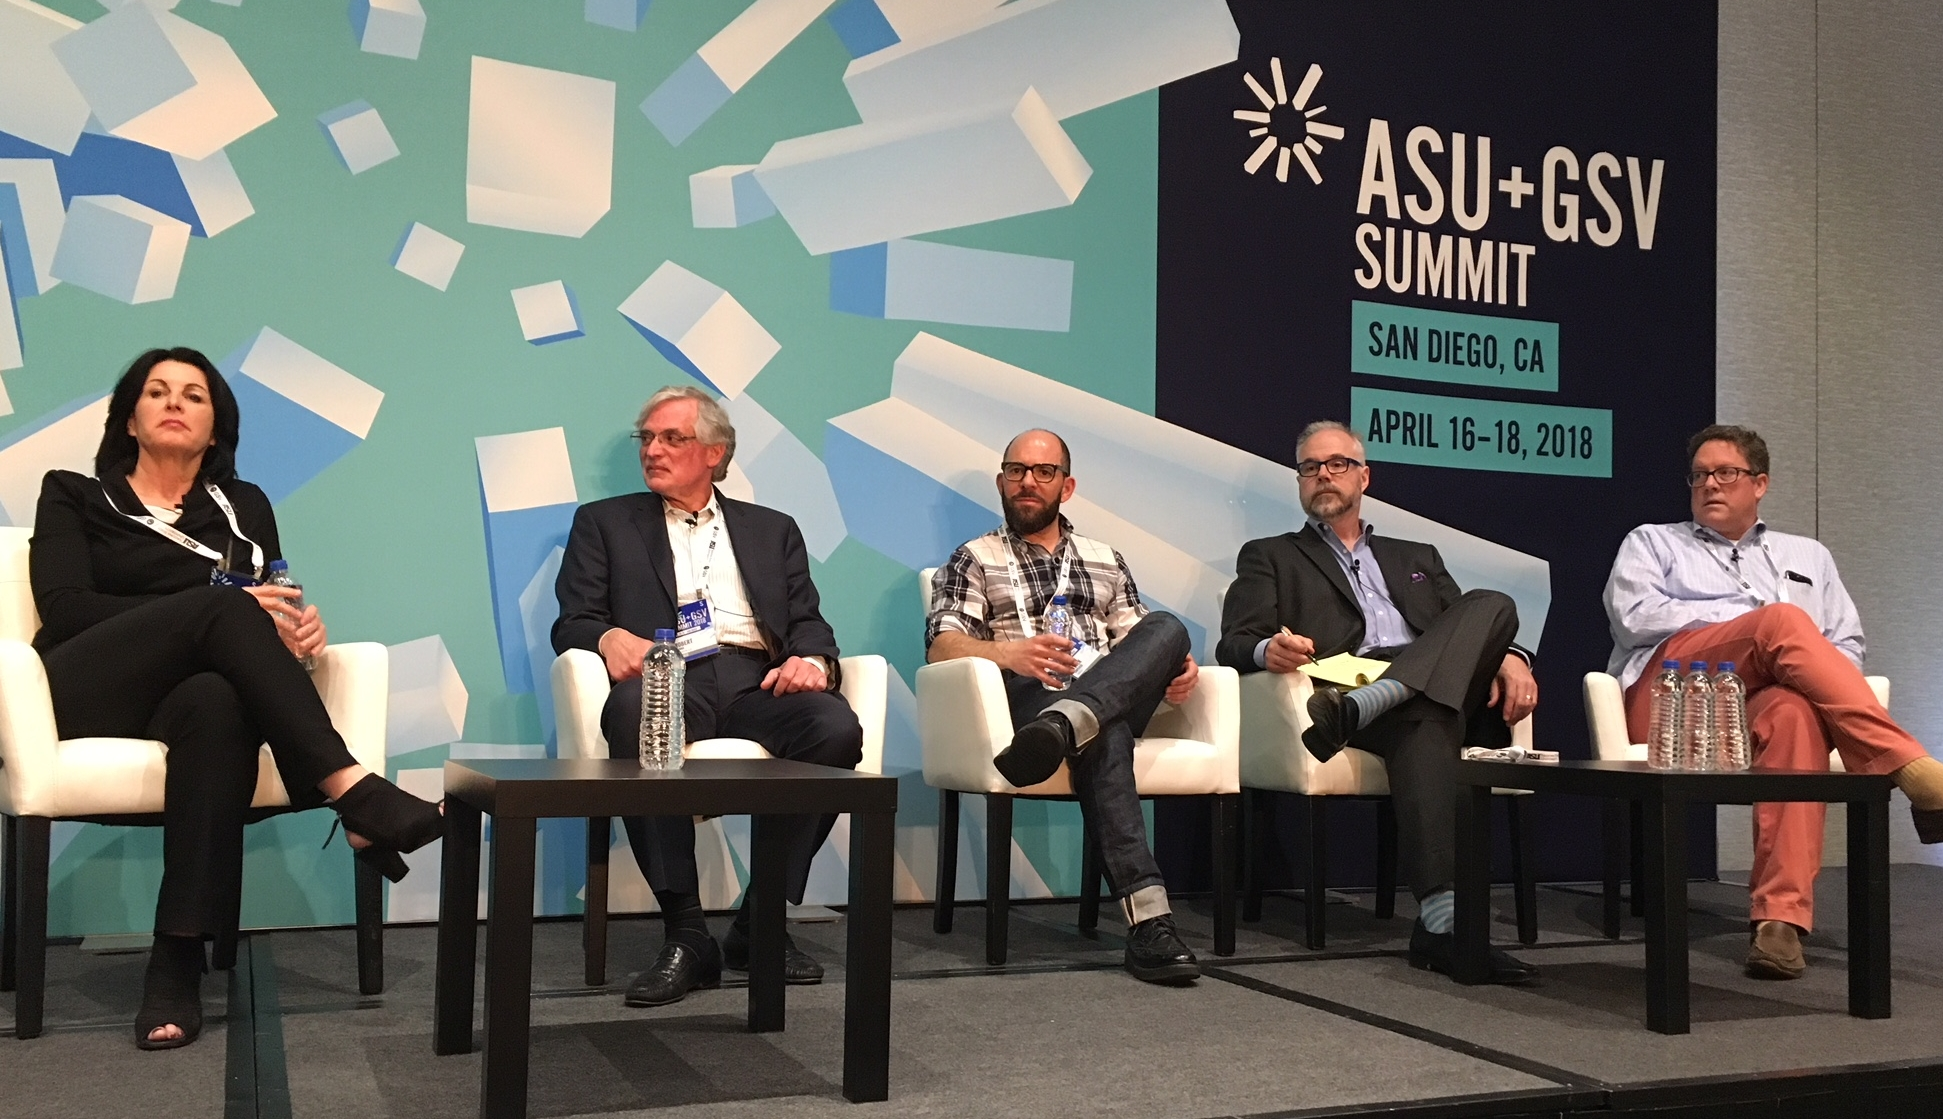 Panel discussion members from Degreed, Deloitte, Grovo, GSV, and USC discussed the ROI of Learning moderated by Claire Schooley at  ASU+GSV Summit in San Diego .